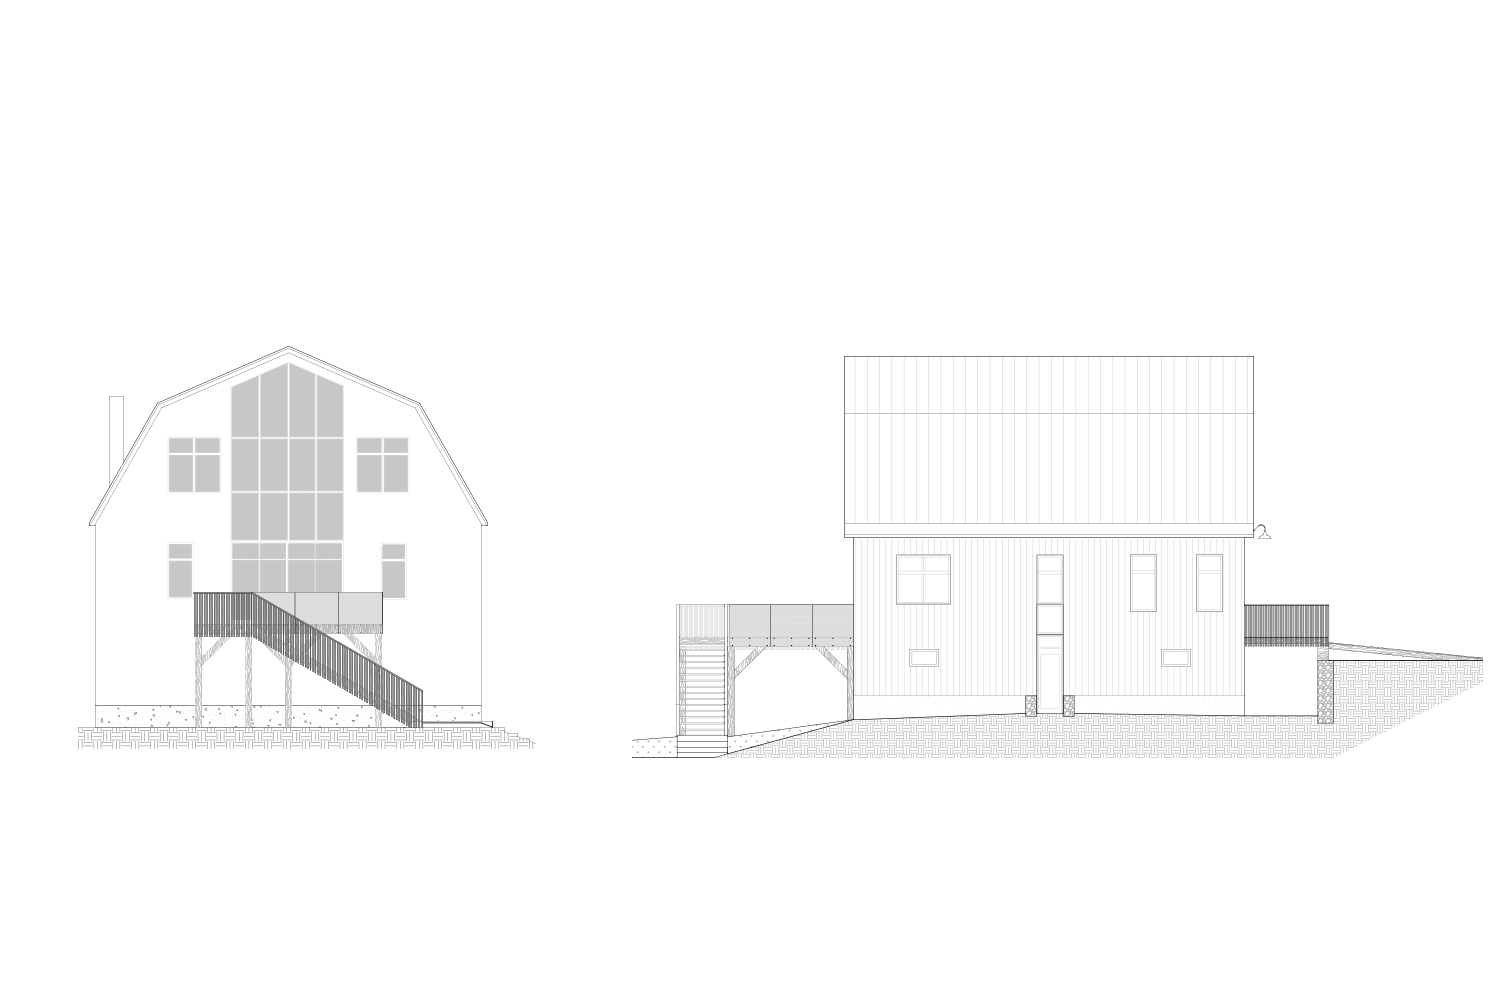 Exterior elevations of the cottage